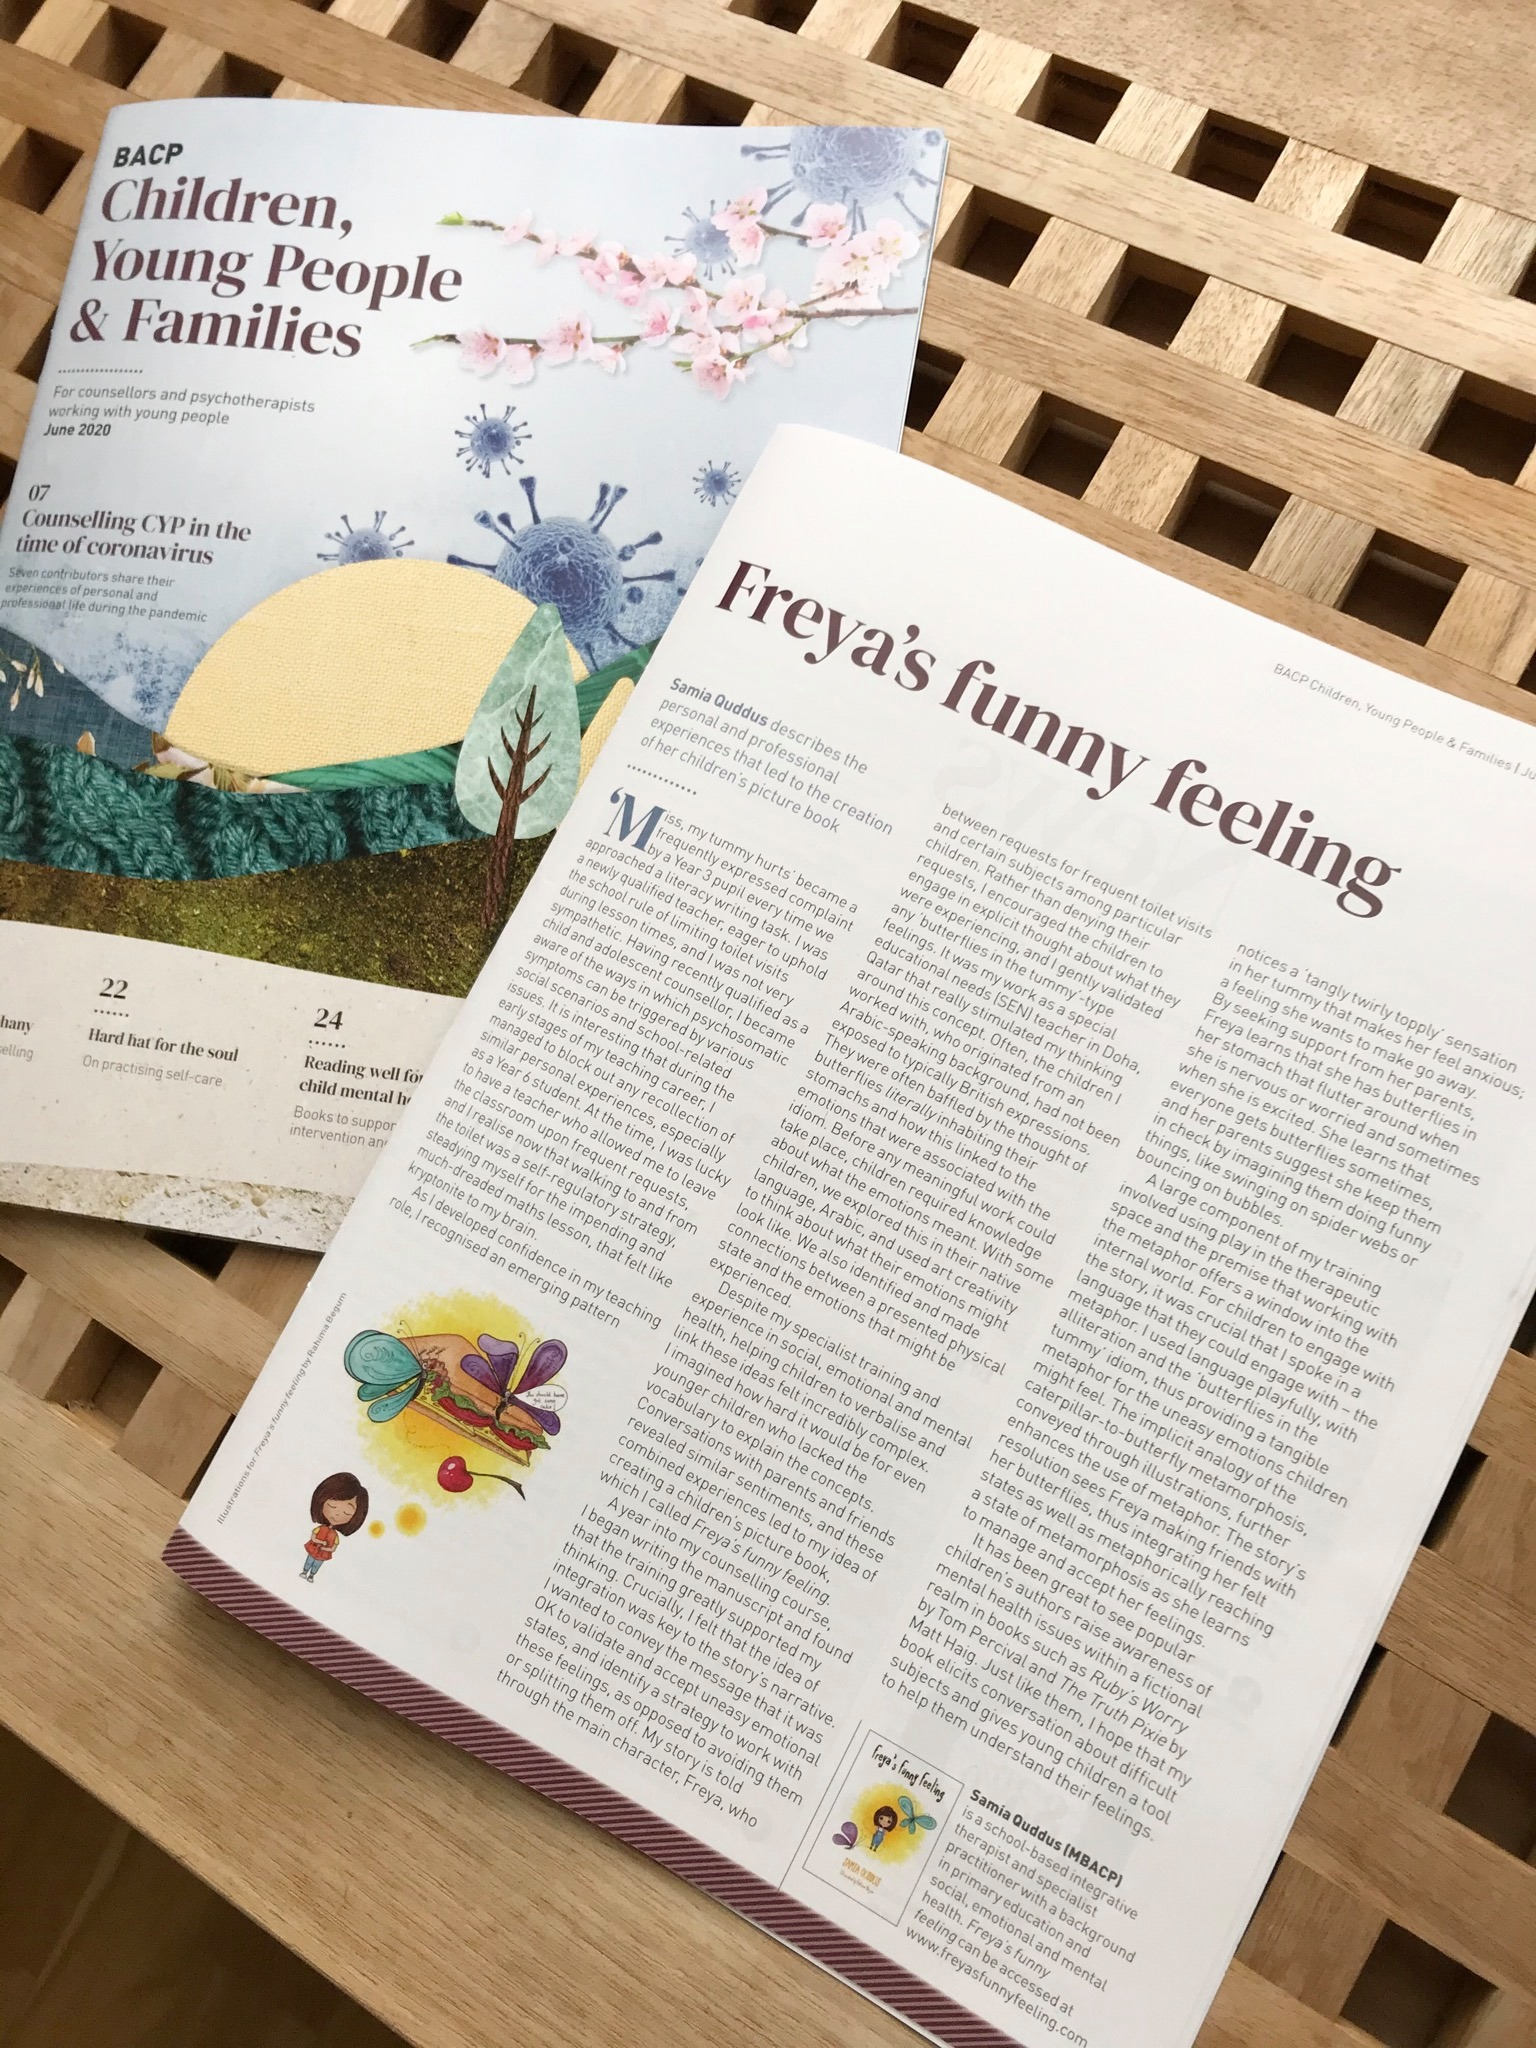 Freya's Funny Feeling featured in the BACP CYP magazine, June 2020